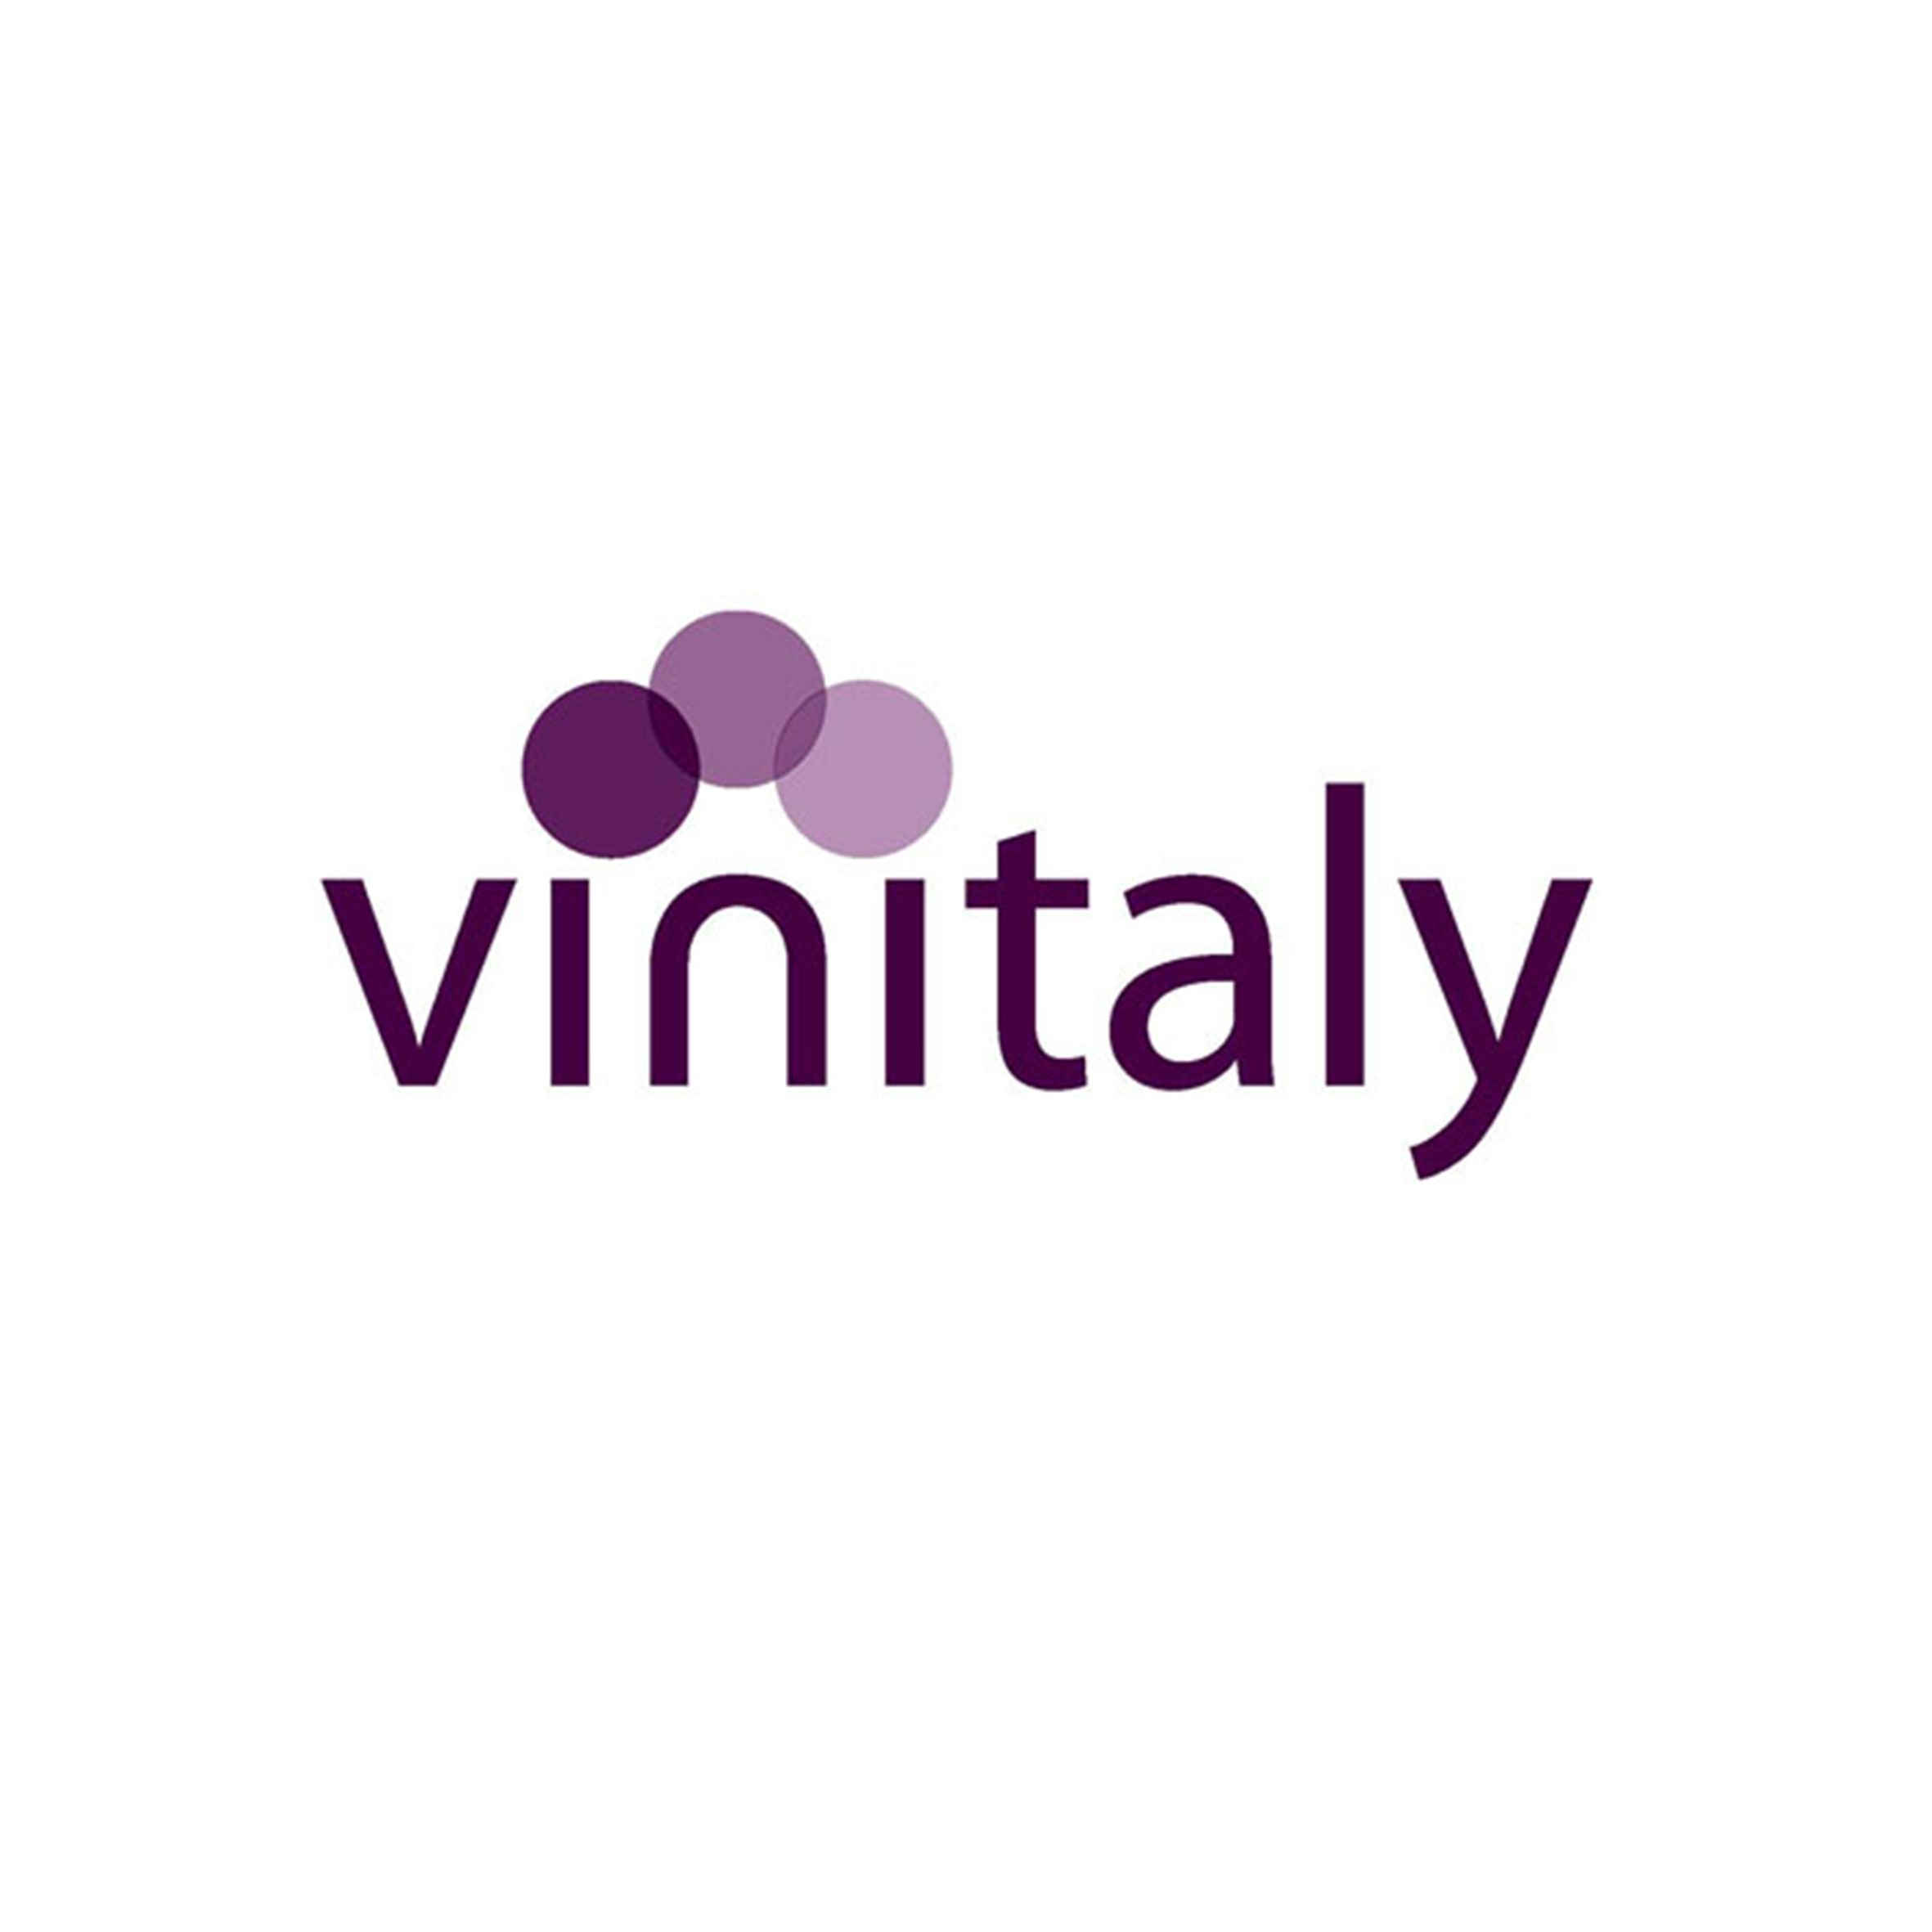 Vinitaly - The other '4Ps' of Italian wine